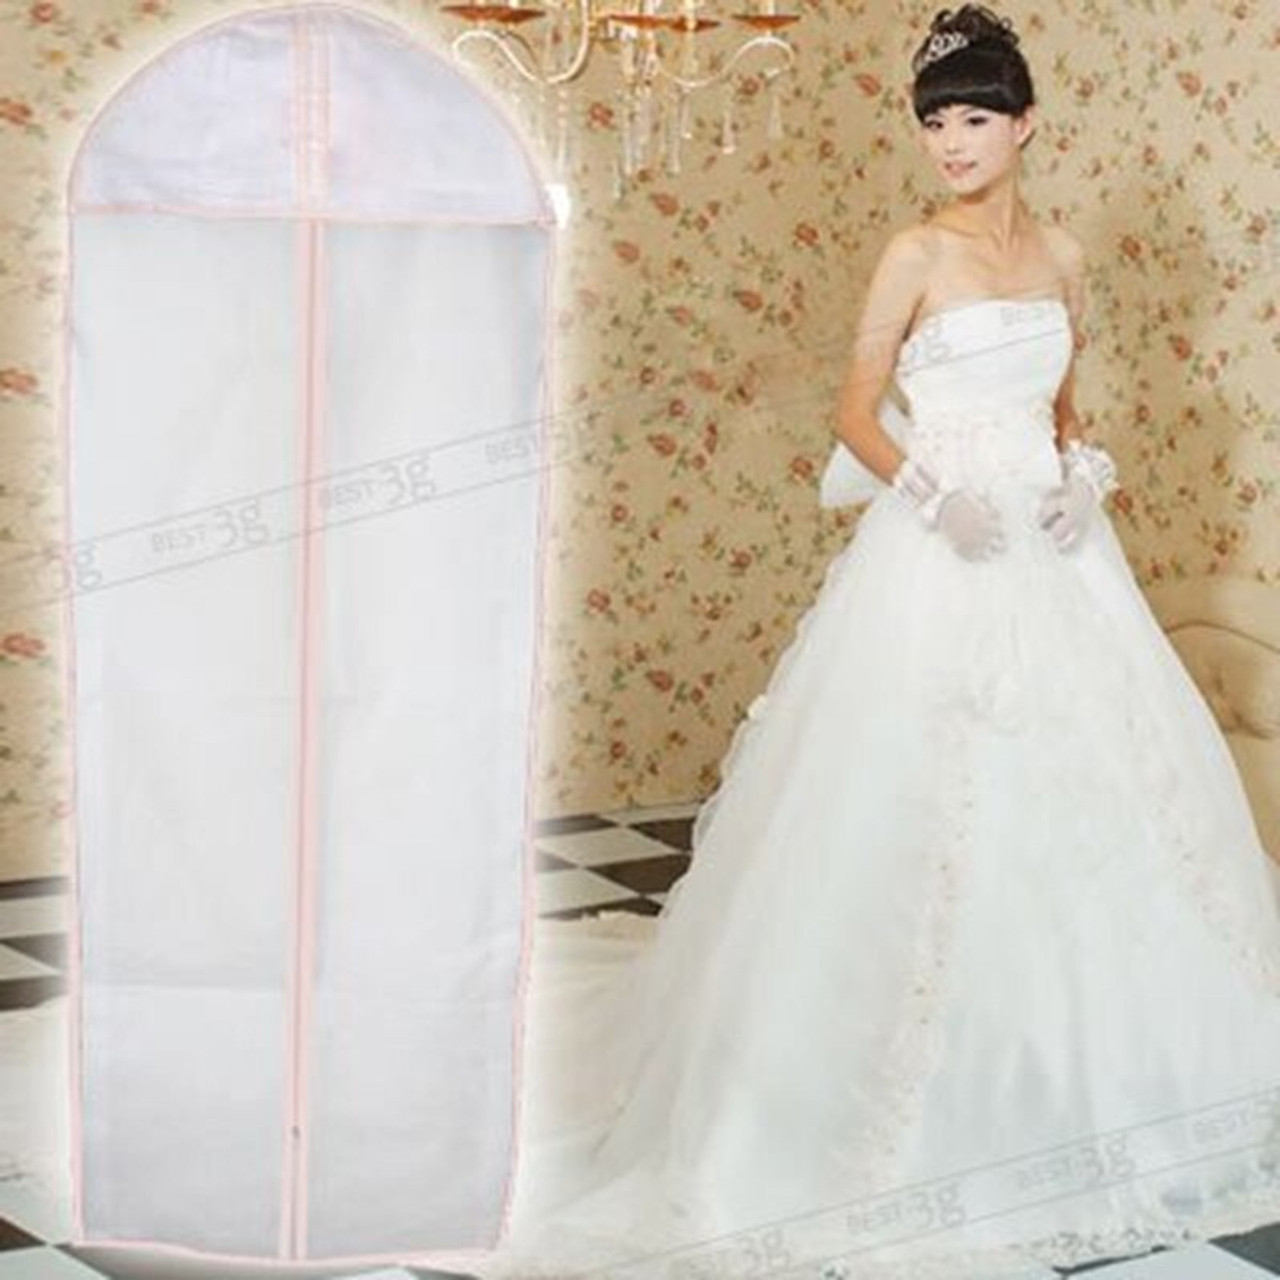 Breathable 6ft Wedding Dress Garment Cover Bridal Prom Ball Gown Protector Bag